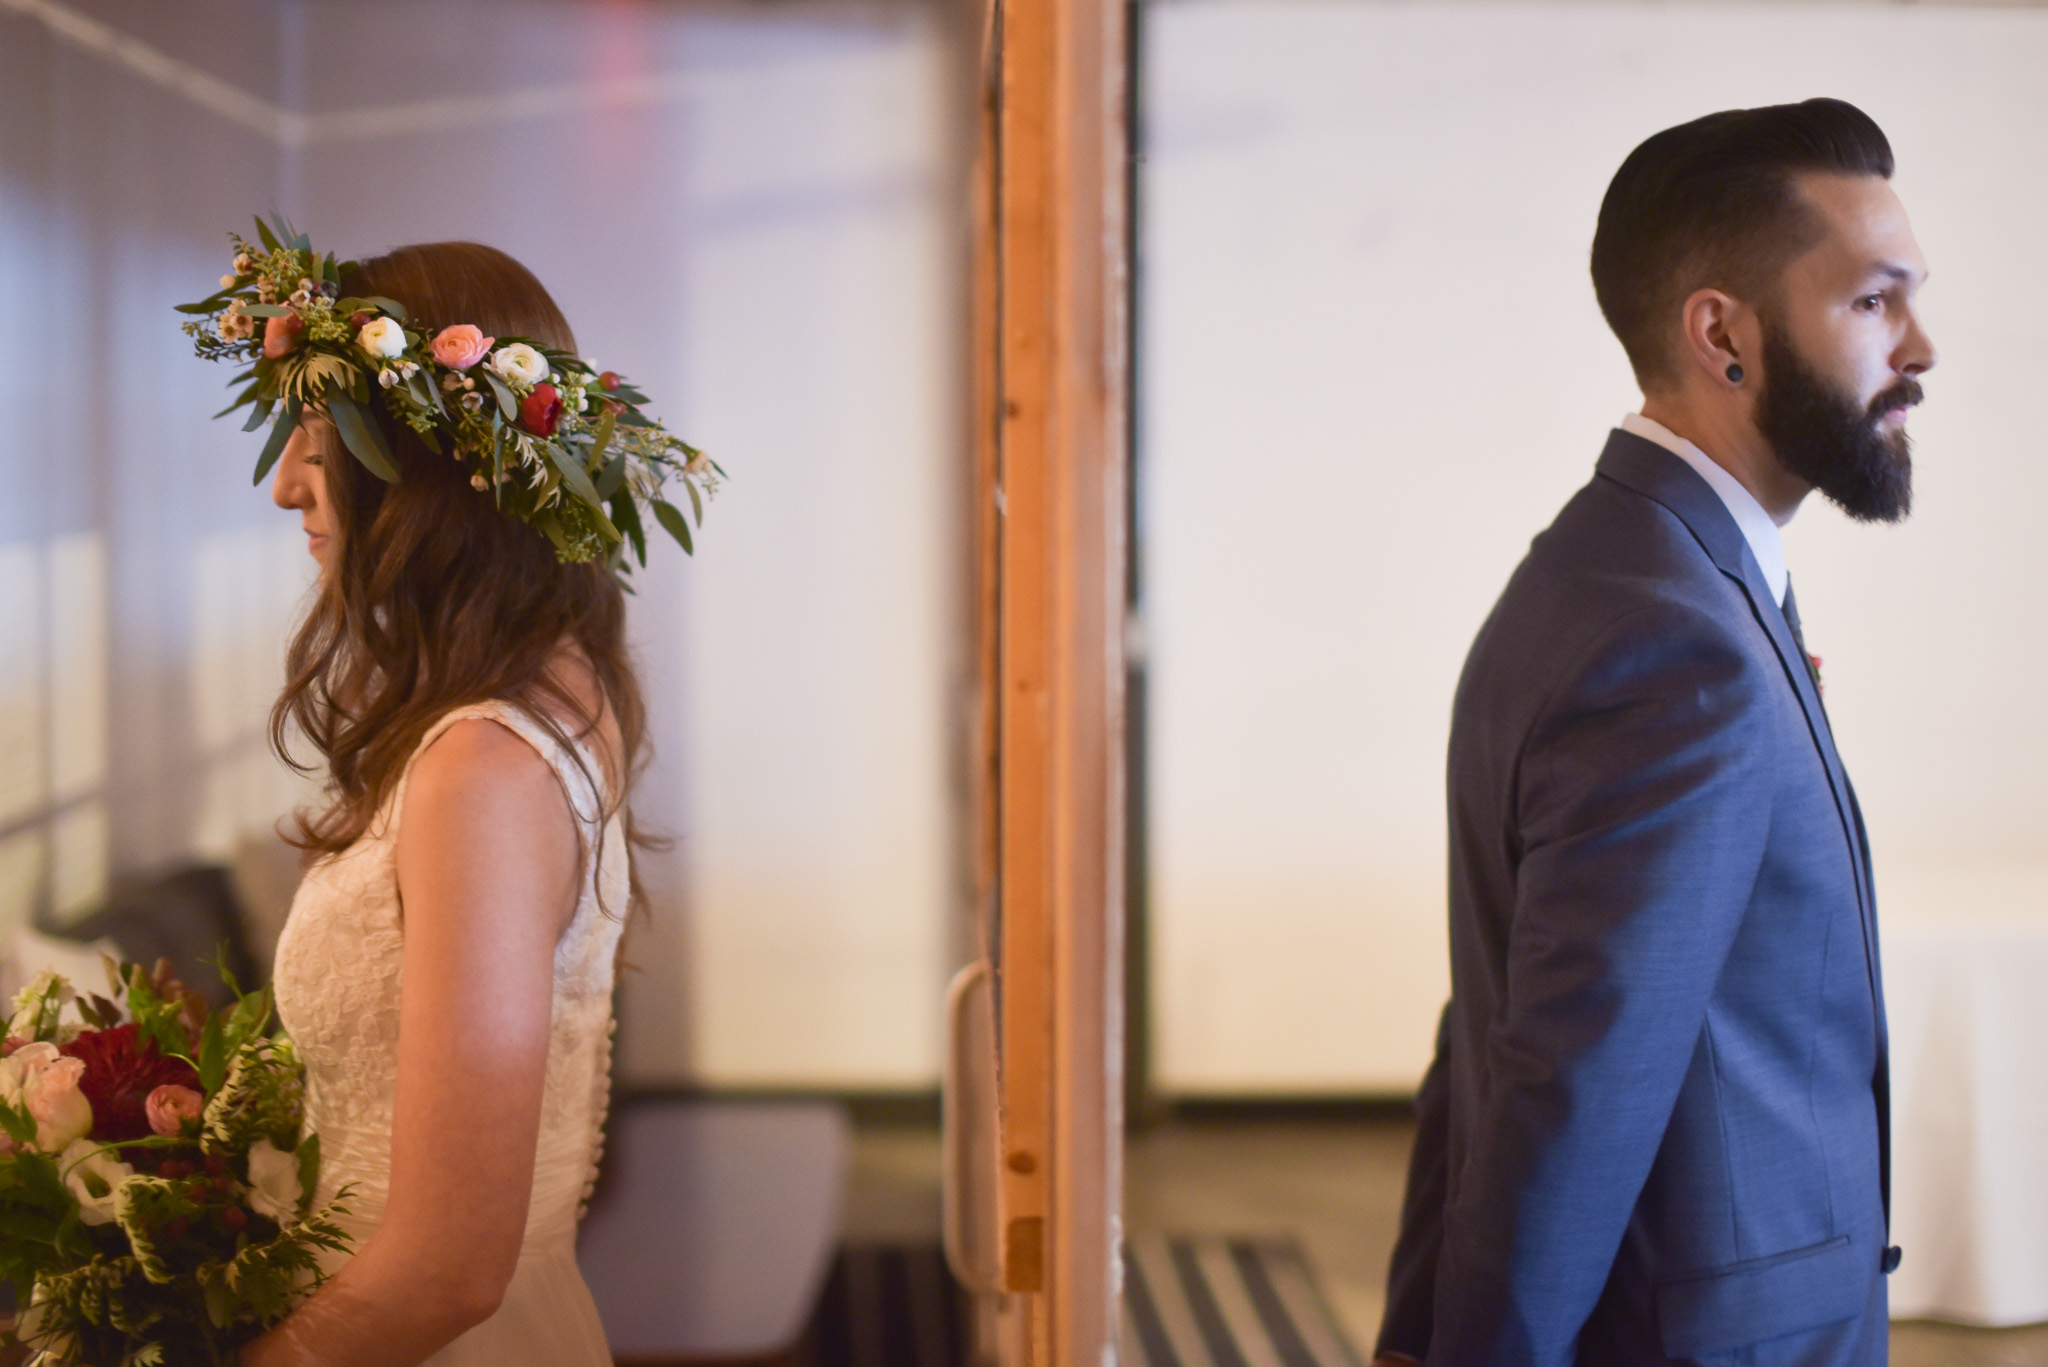 Planner: Bridal Bliss | Photography: Newspin Photography | Rentals: Commonwealth + Something Borrowed | Catering: Kalua Brothers | Dessert: Blue Star Donuts | Floral: Carrie Newson | DJ: Chad Dowling Productions